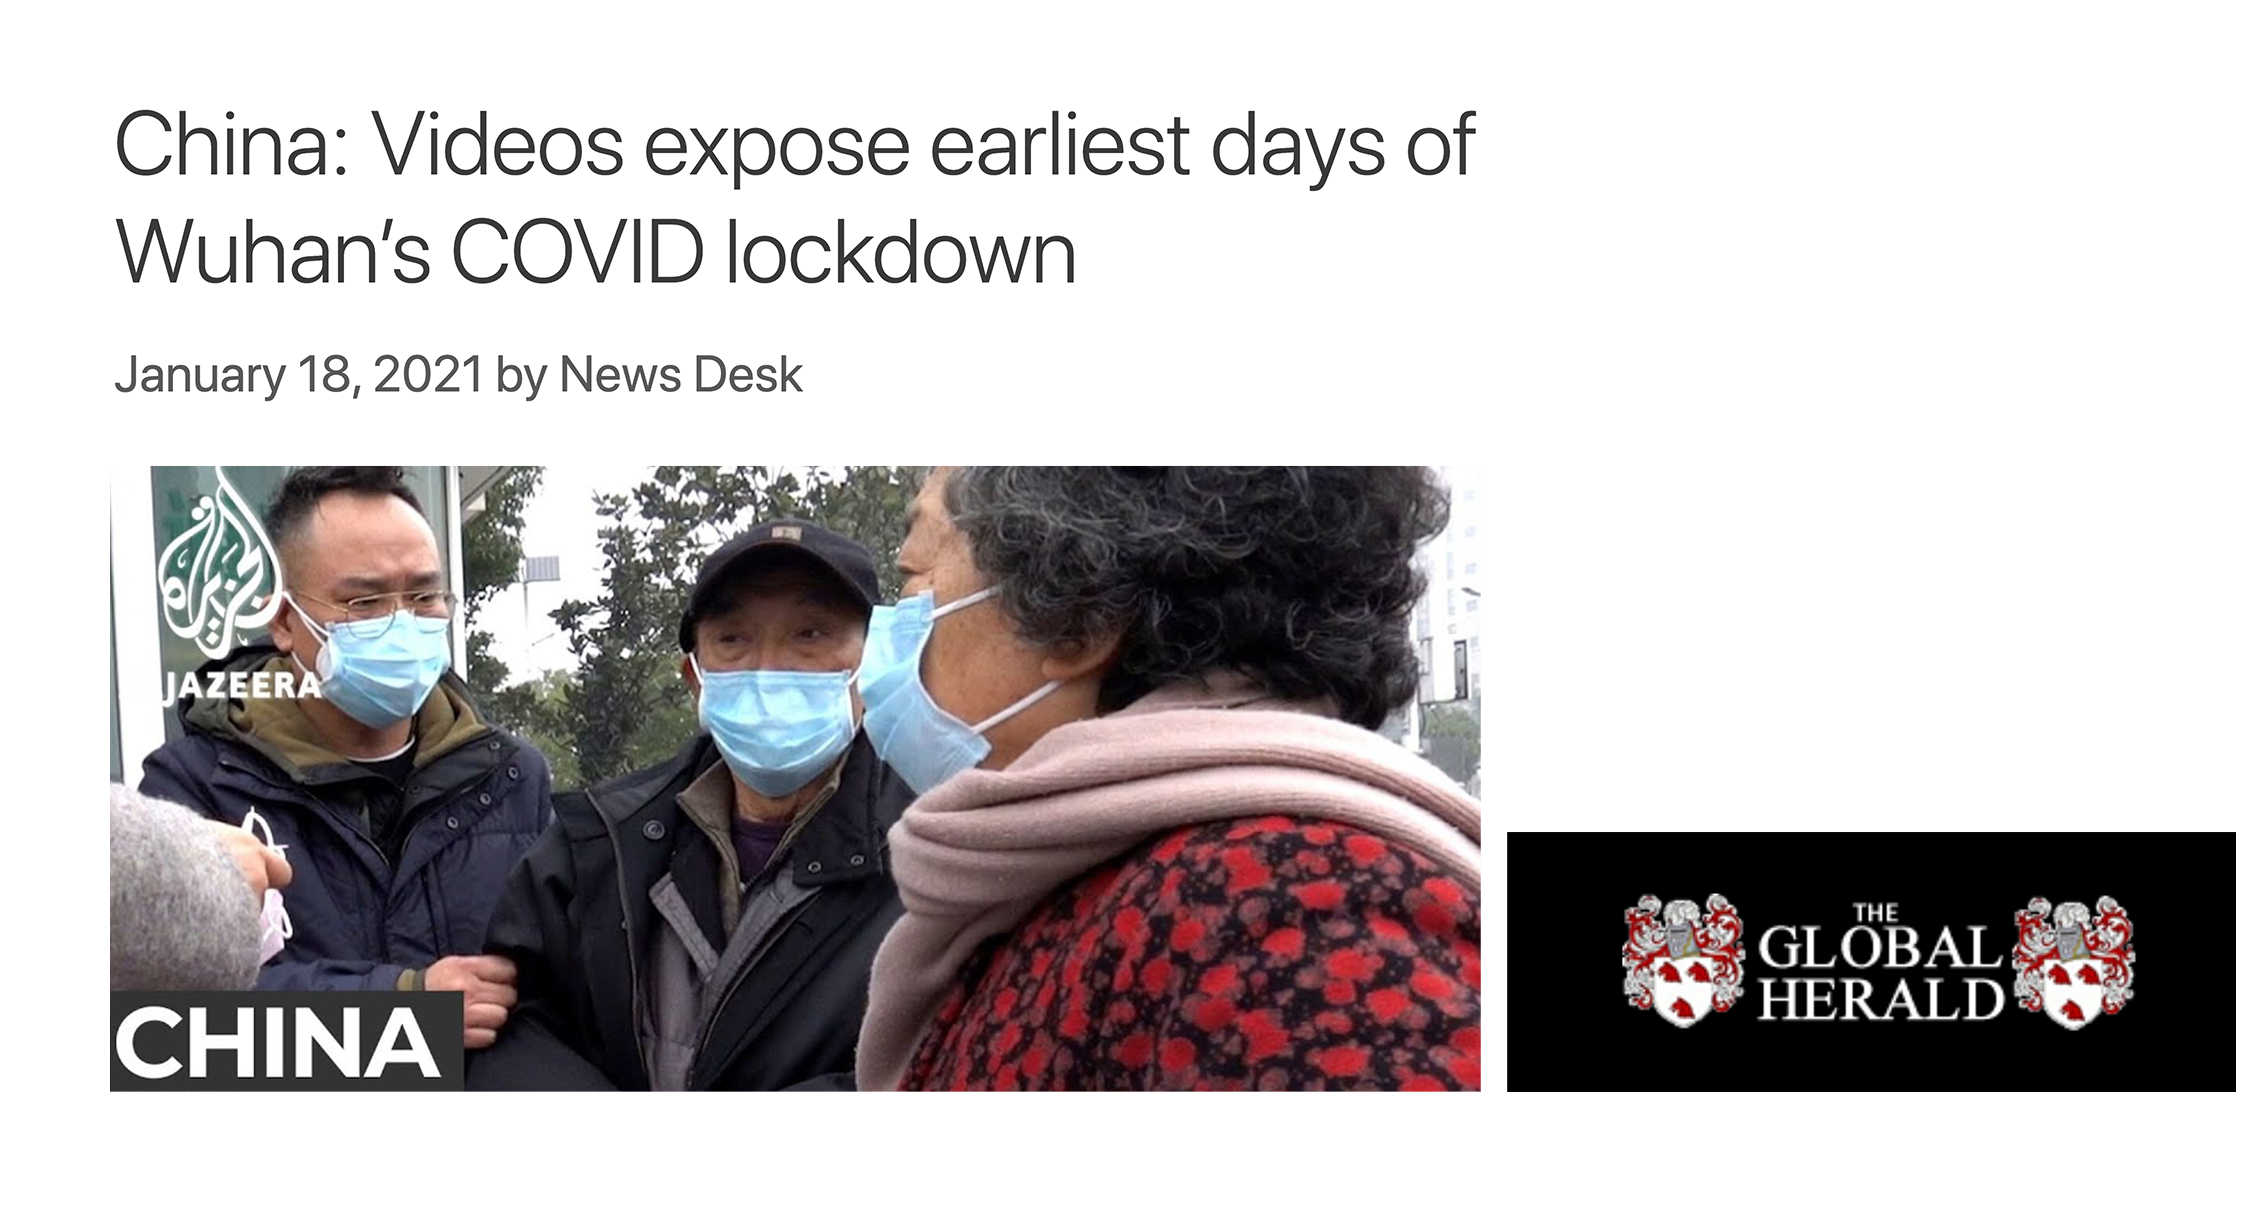 China: Videos expose earliest days of Wuhan's COVID lockdown